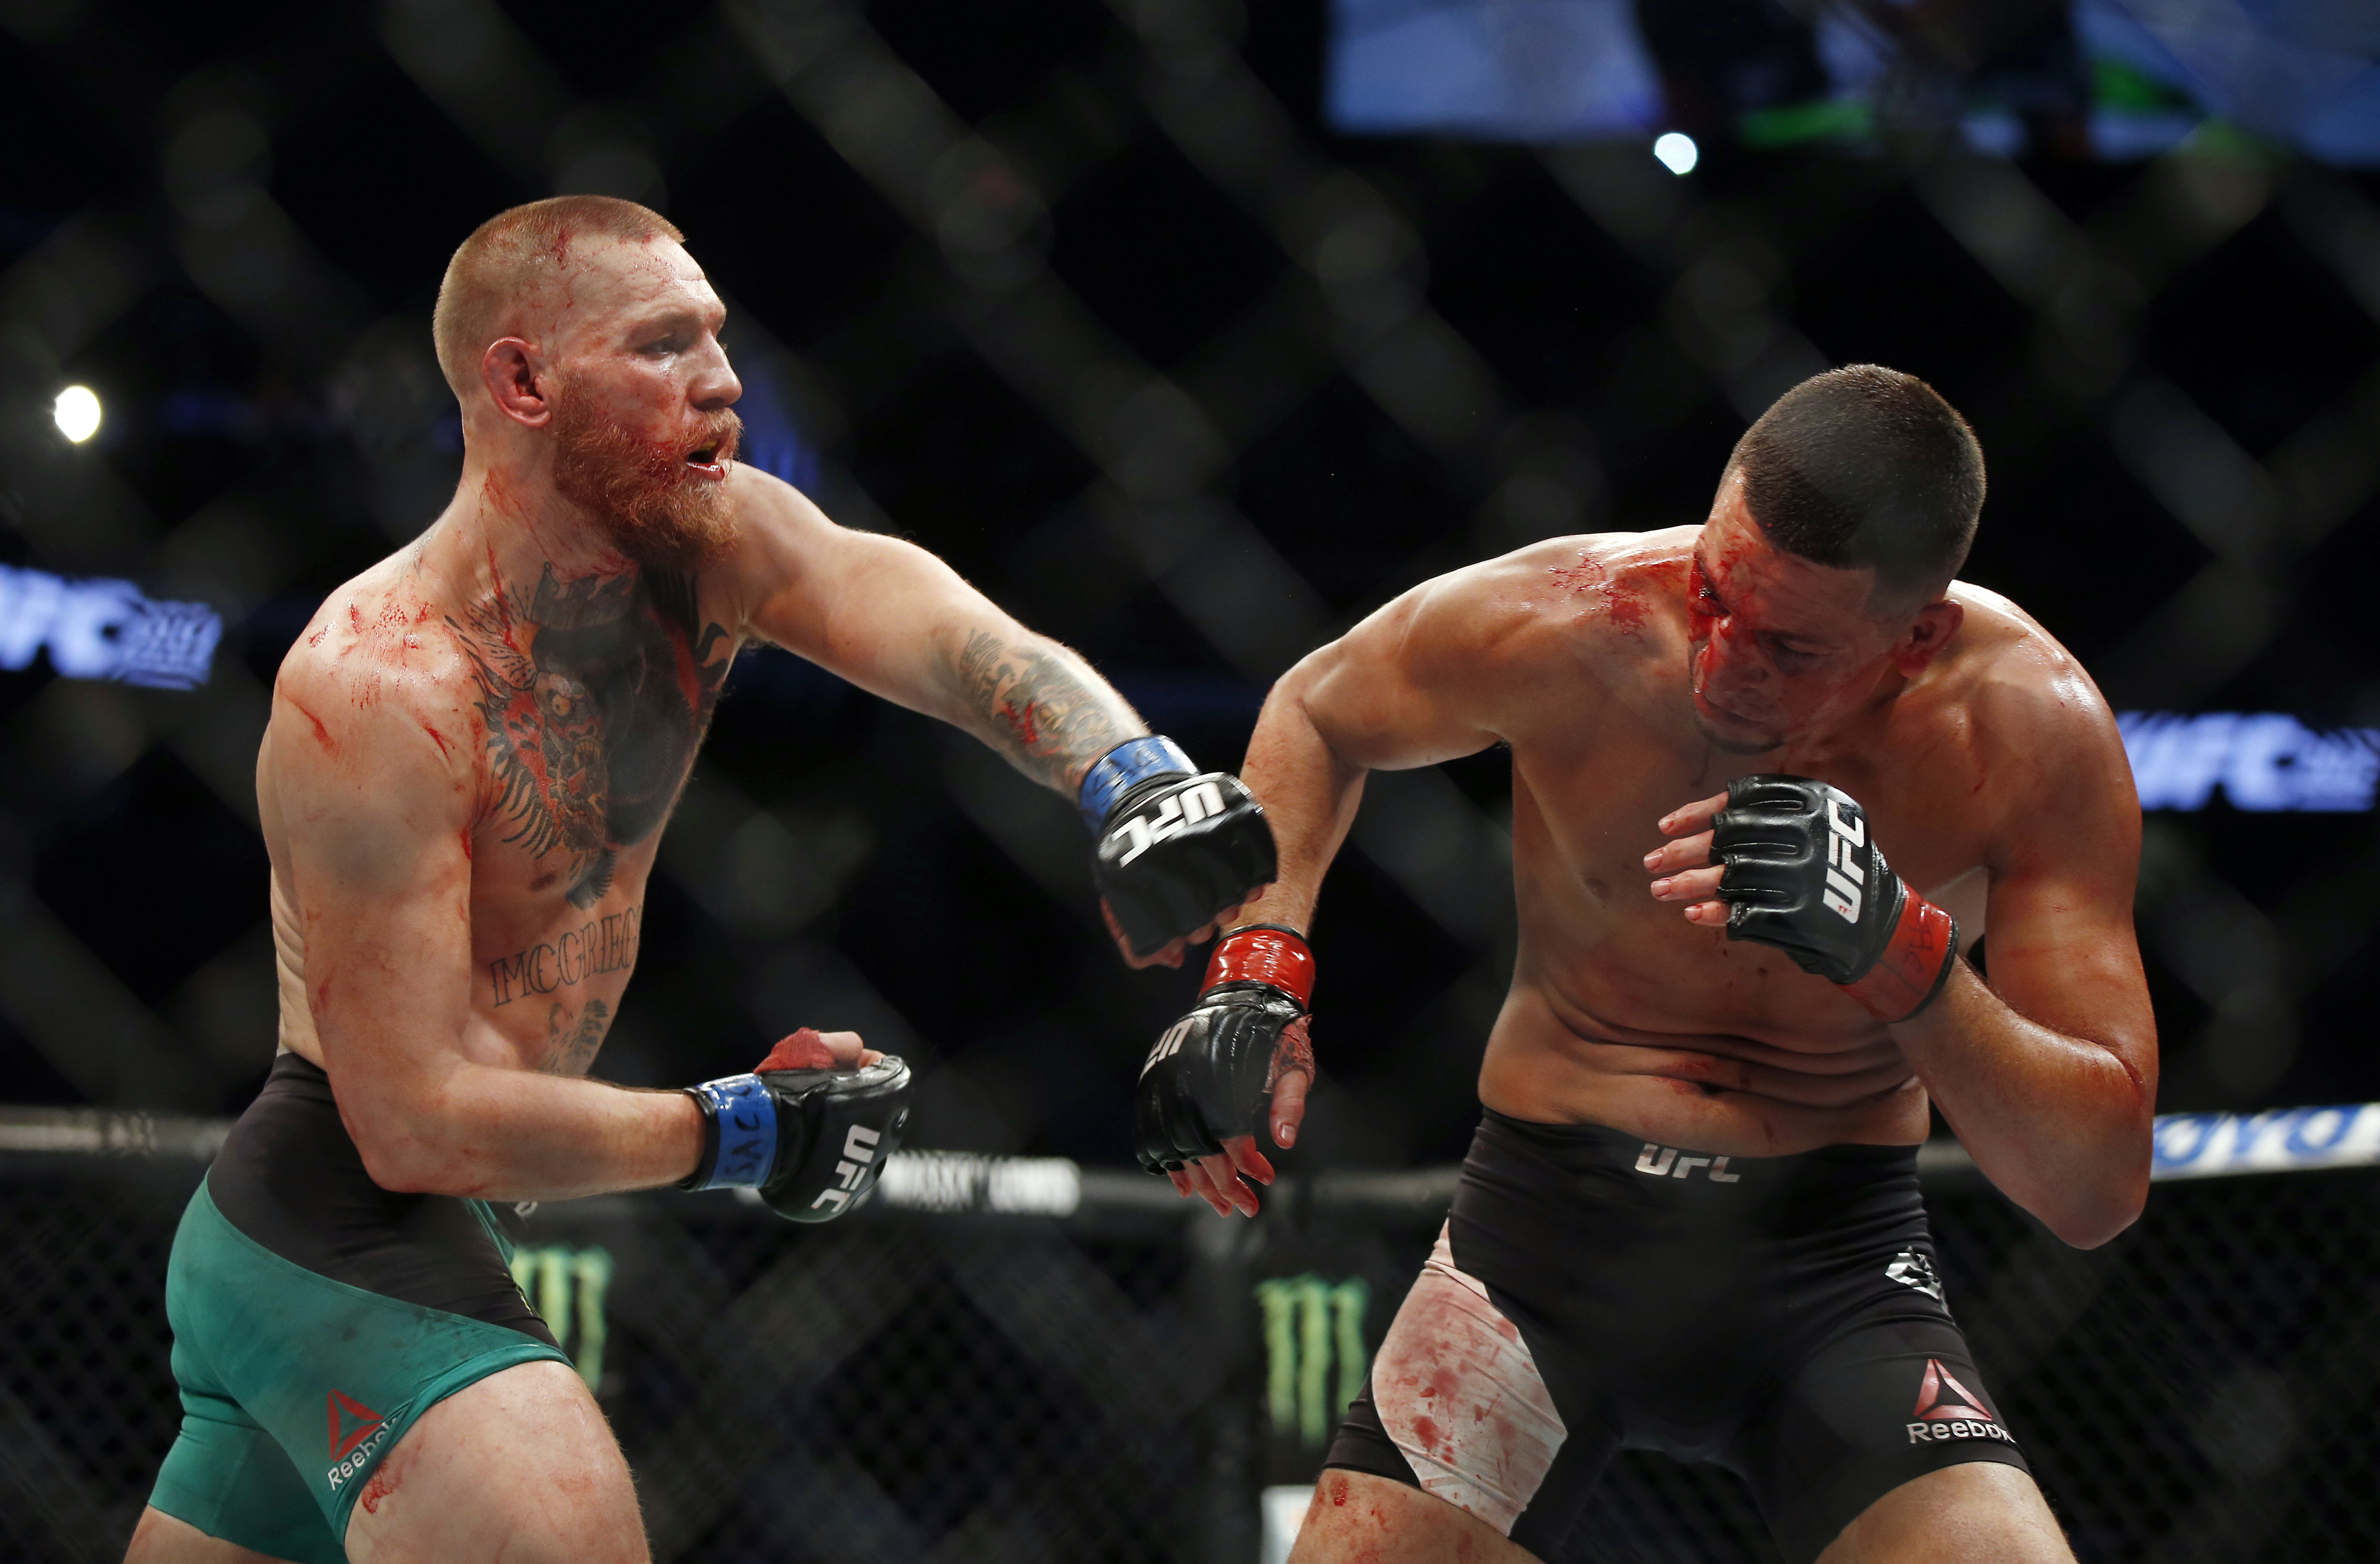 Conor McGregors Next Opponent Confirmed, Gets Shot At UFC History conor1